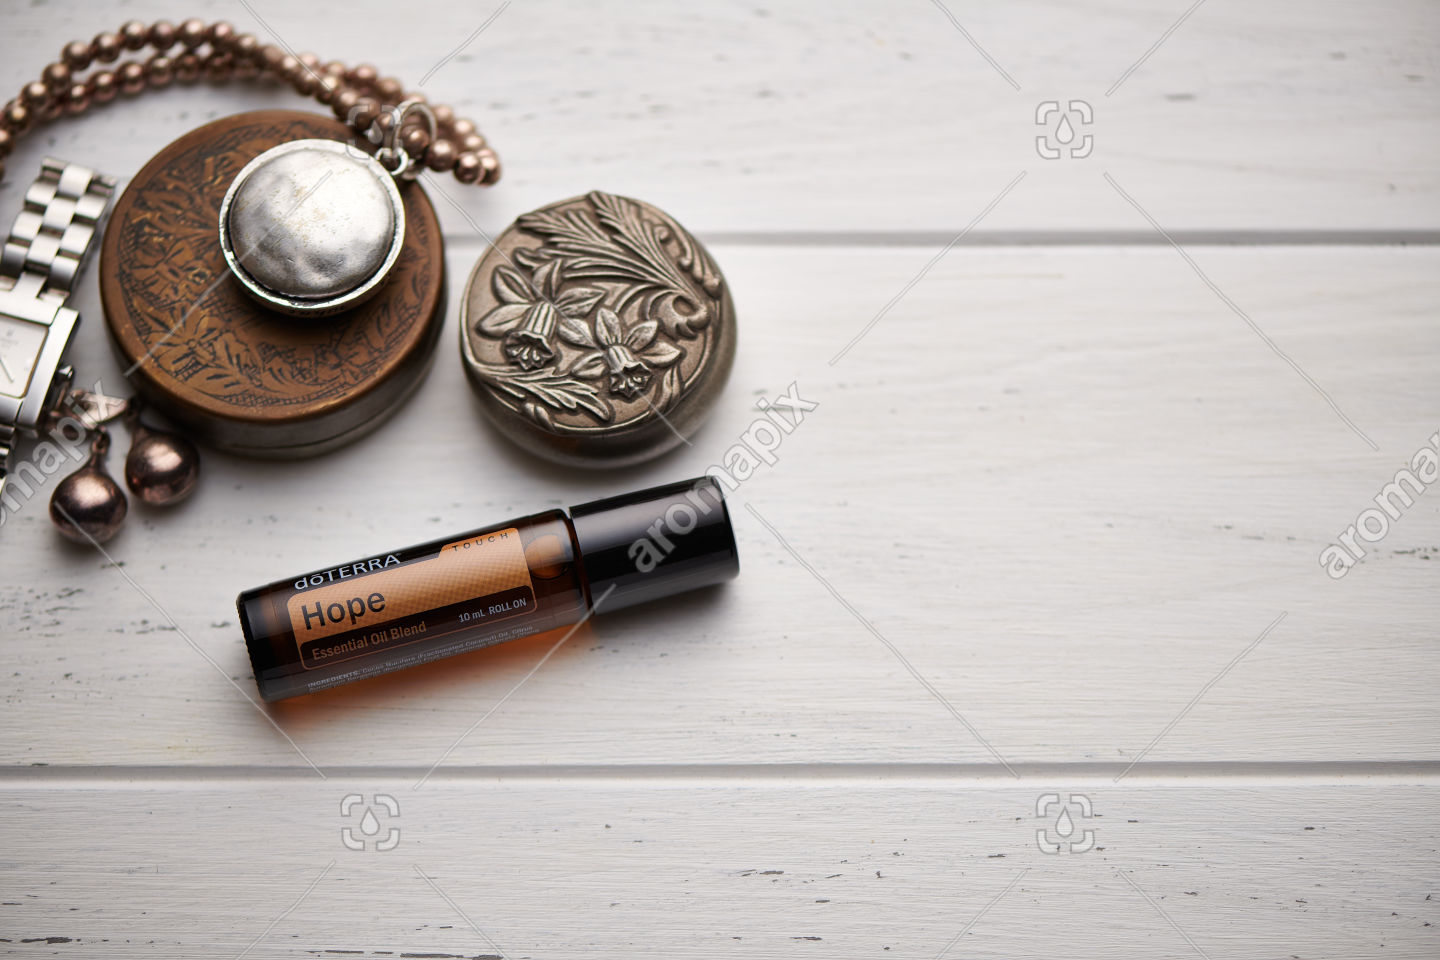 doTERRA Hope Touch on rustic background